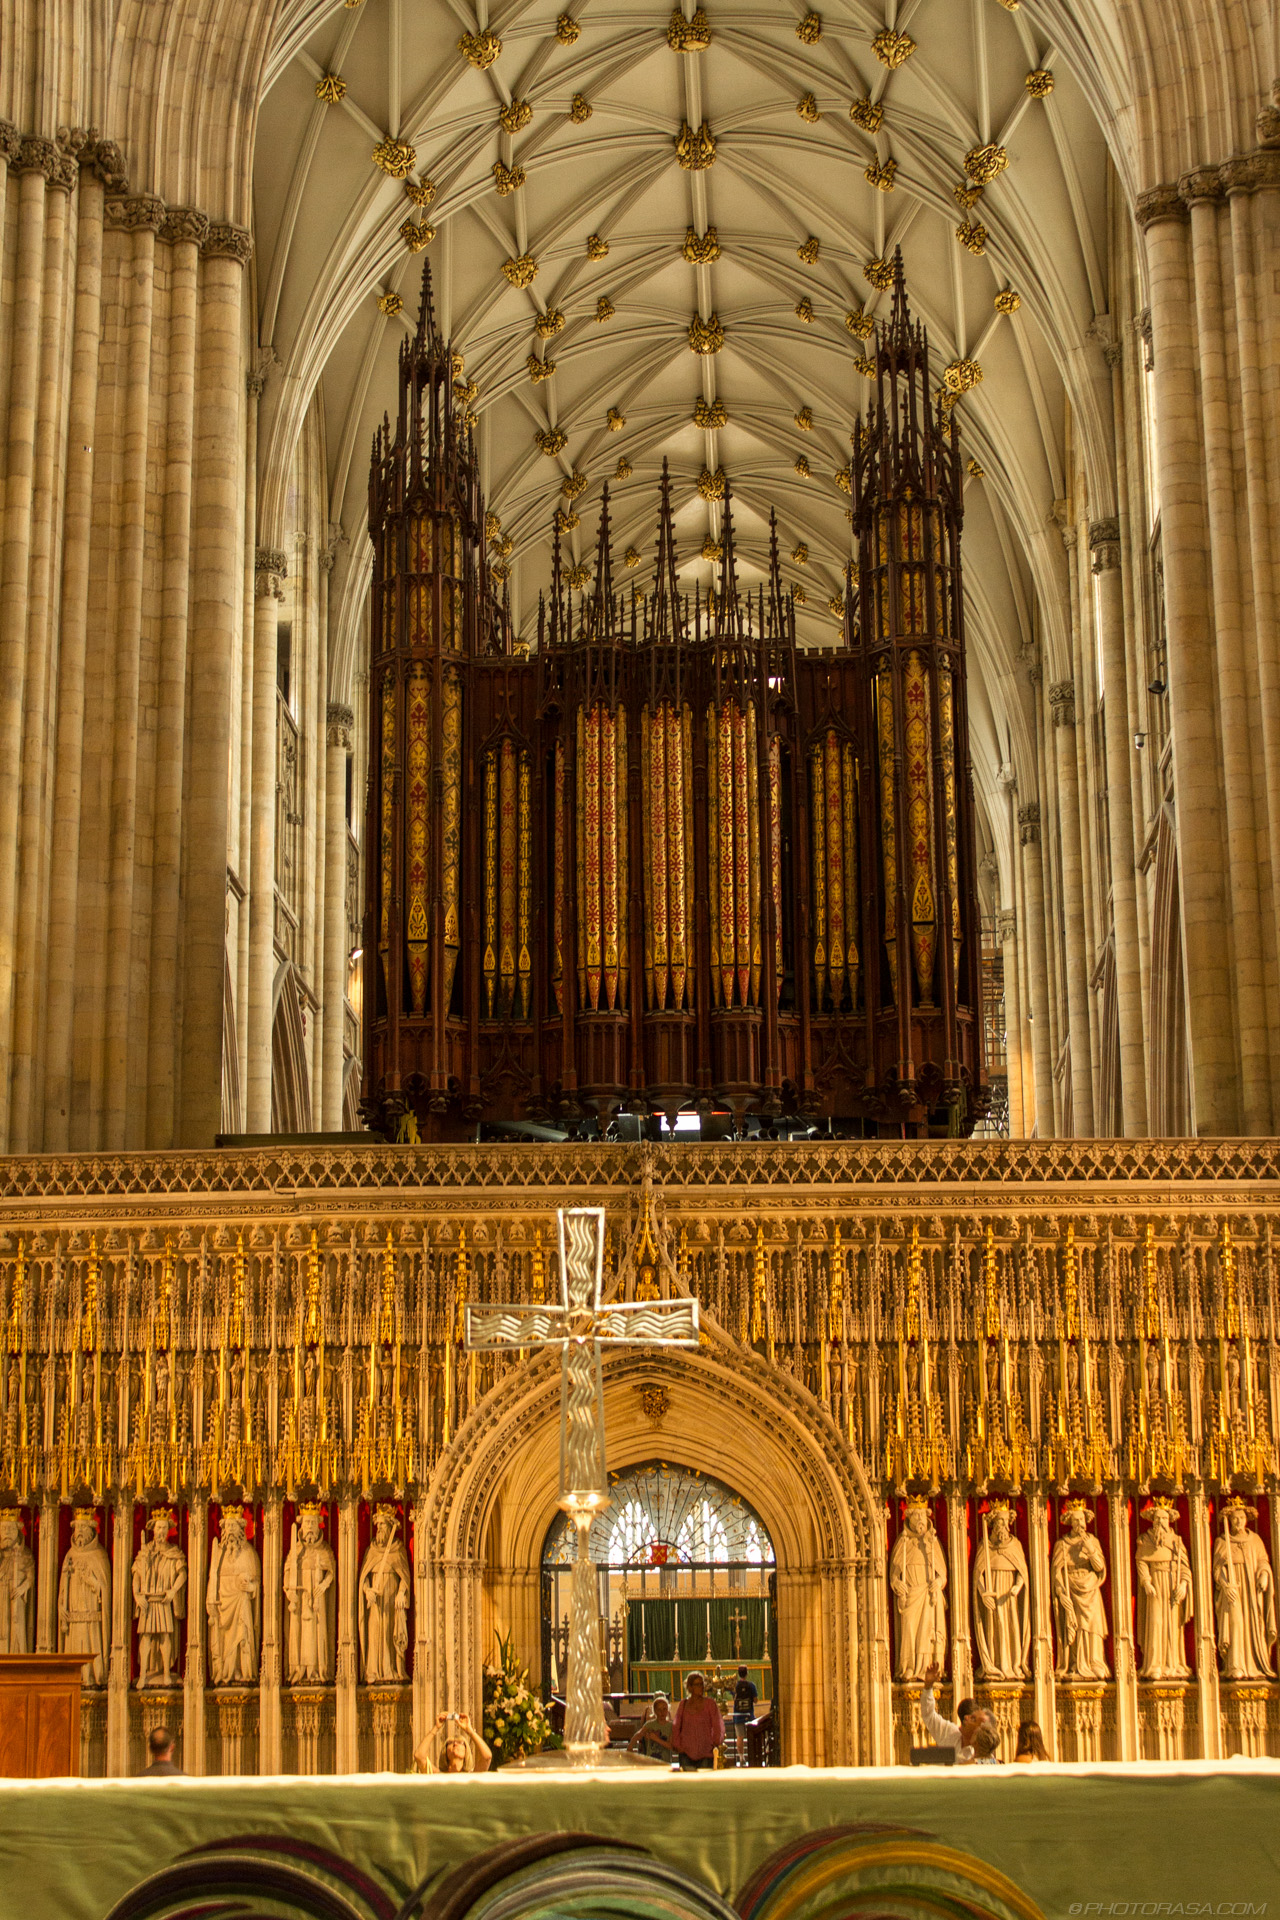 http://photorasa.com/places/yorkminster-cathedral/attachment/organ-and-cross-at-the-quire/